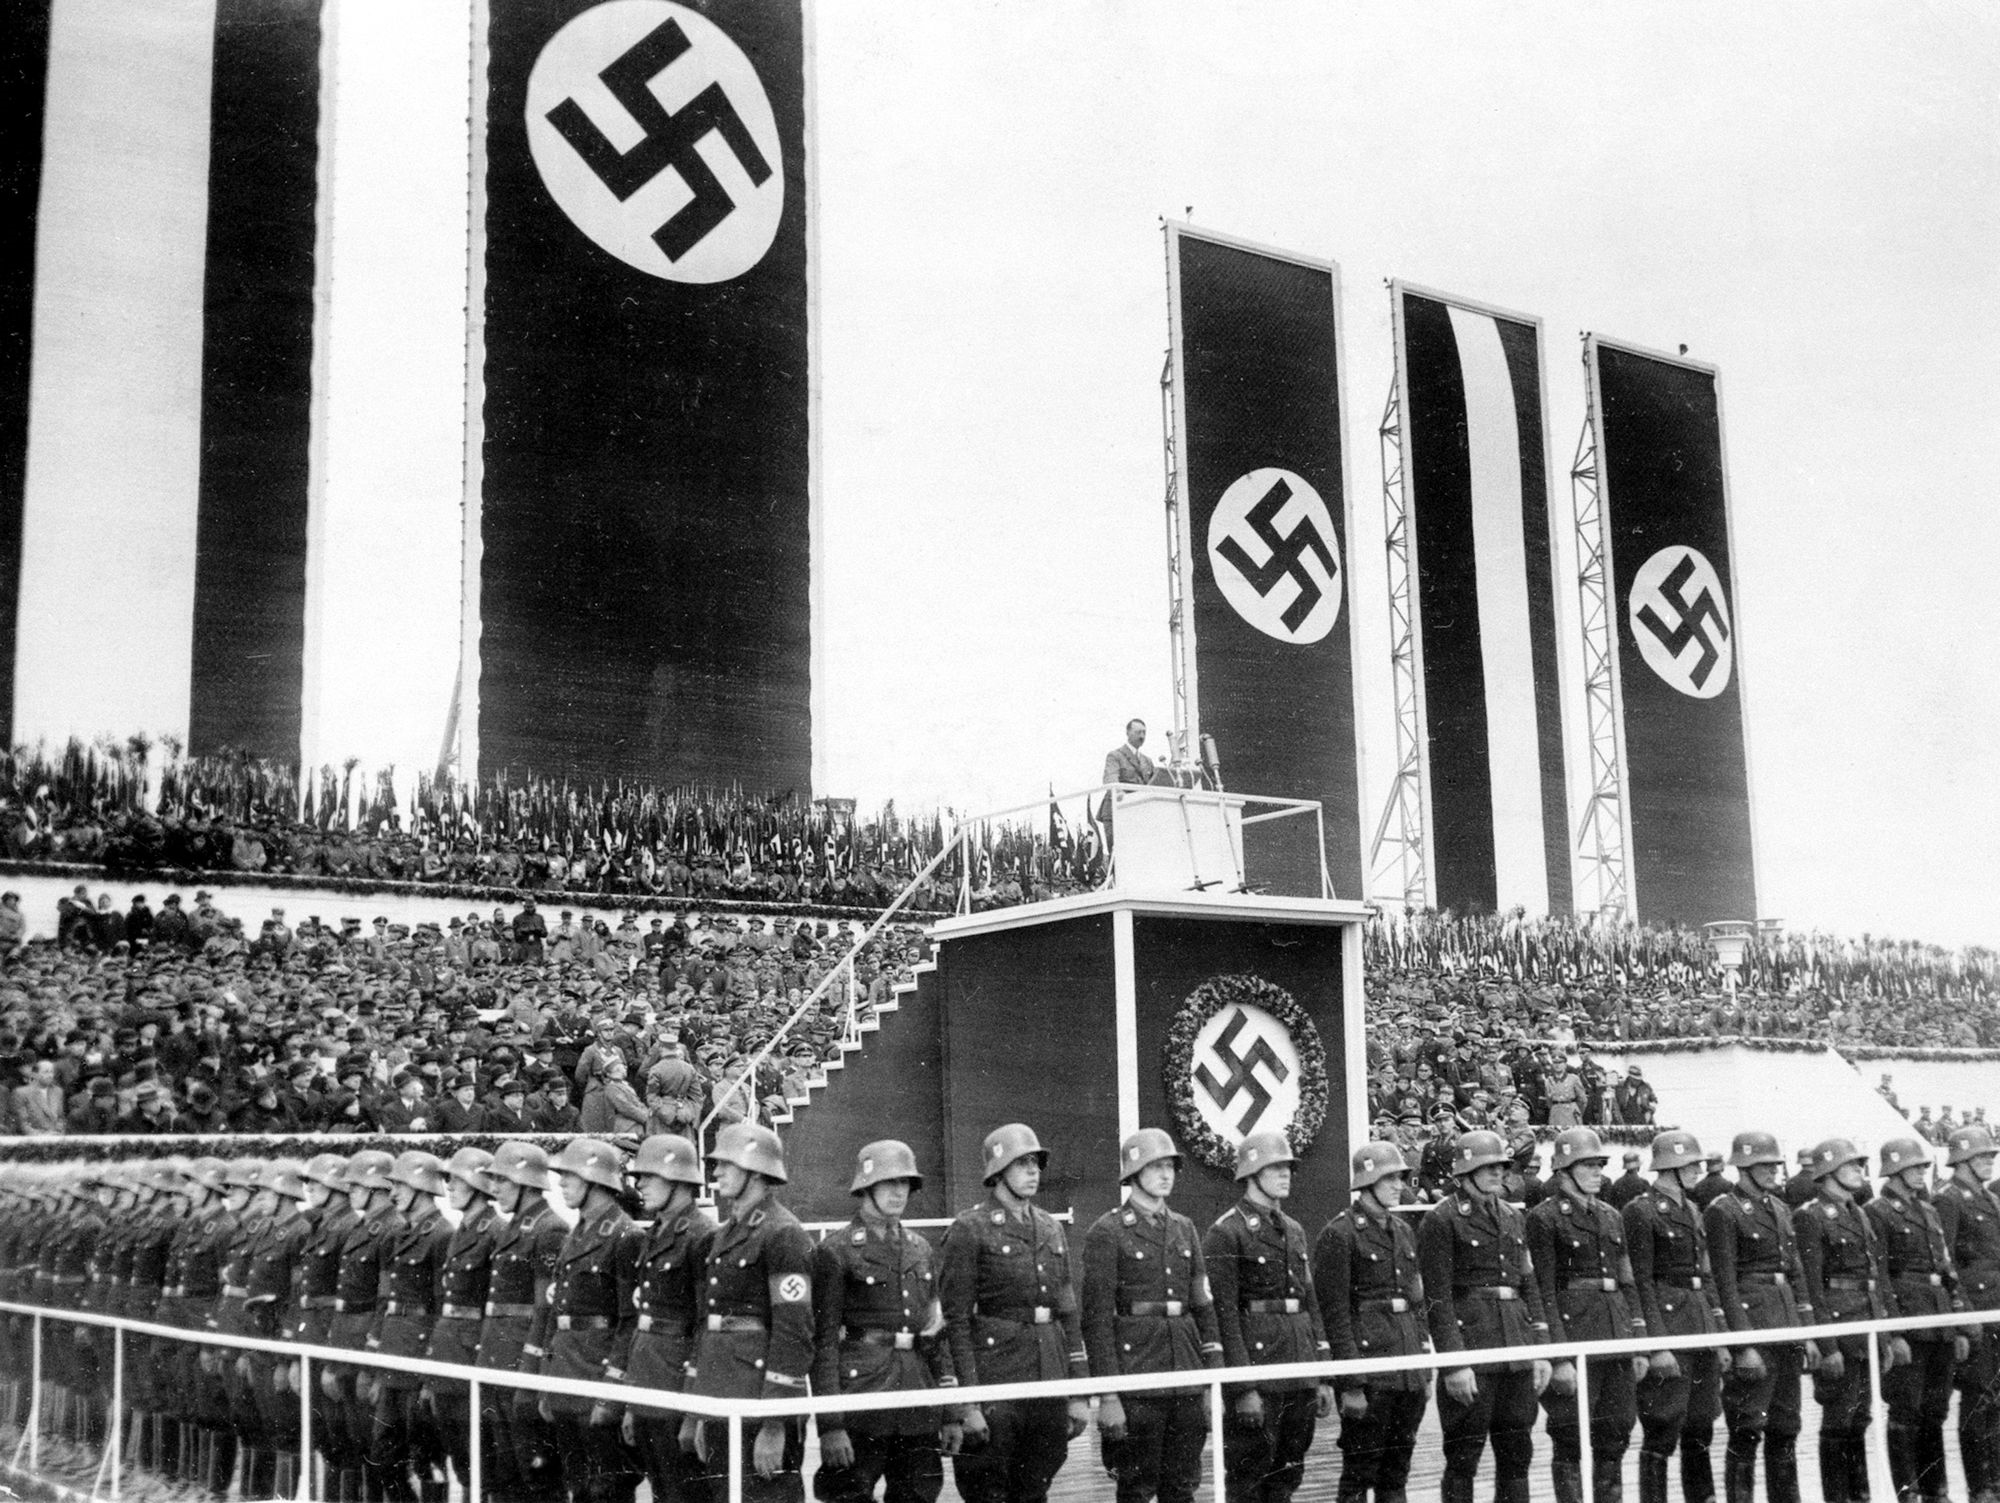 Adolf Hitler gives a speech in Berlin's Tempelhof field for May Day